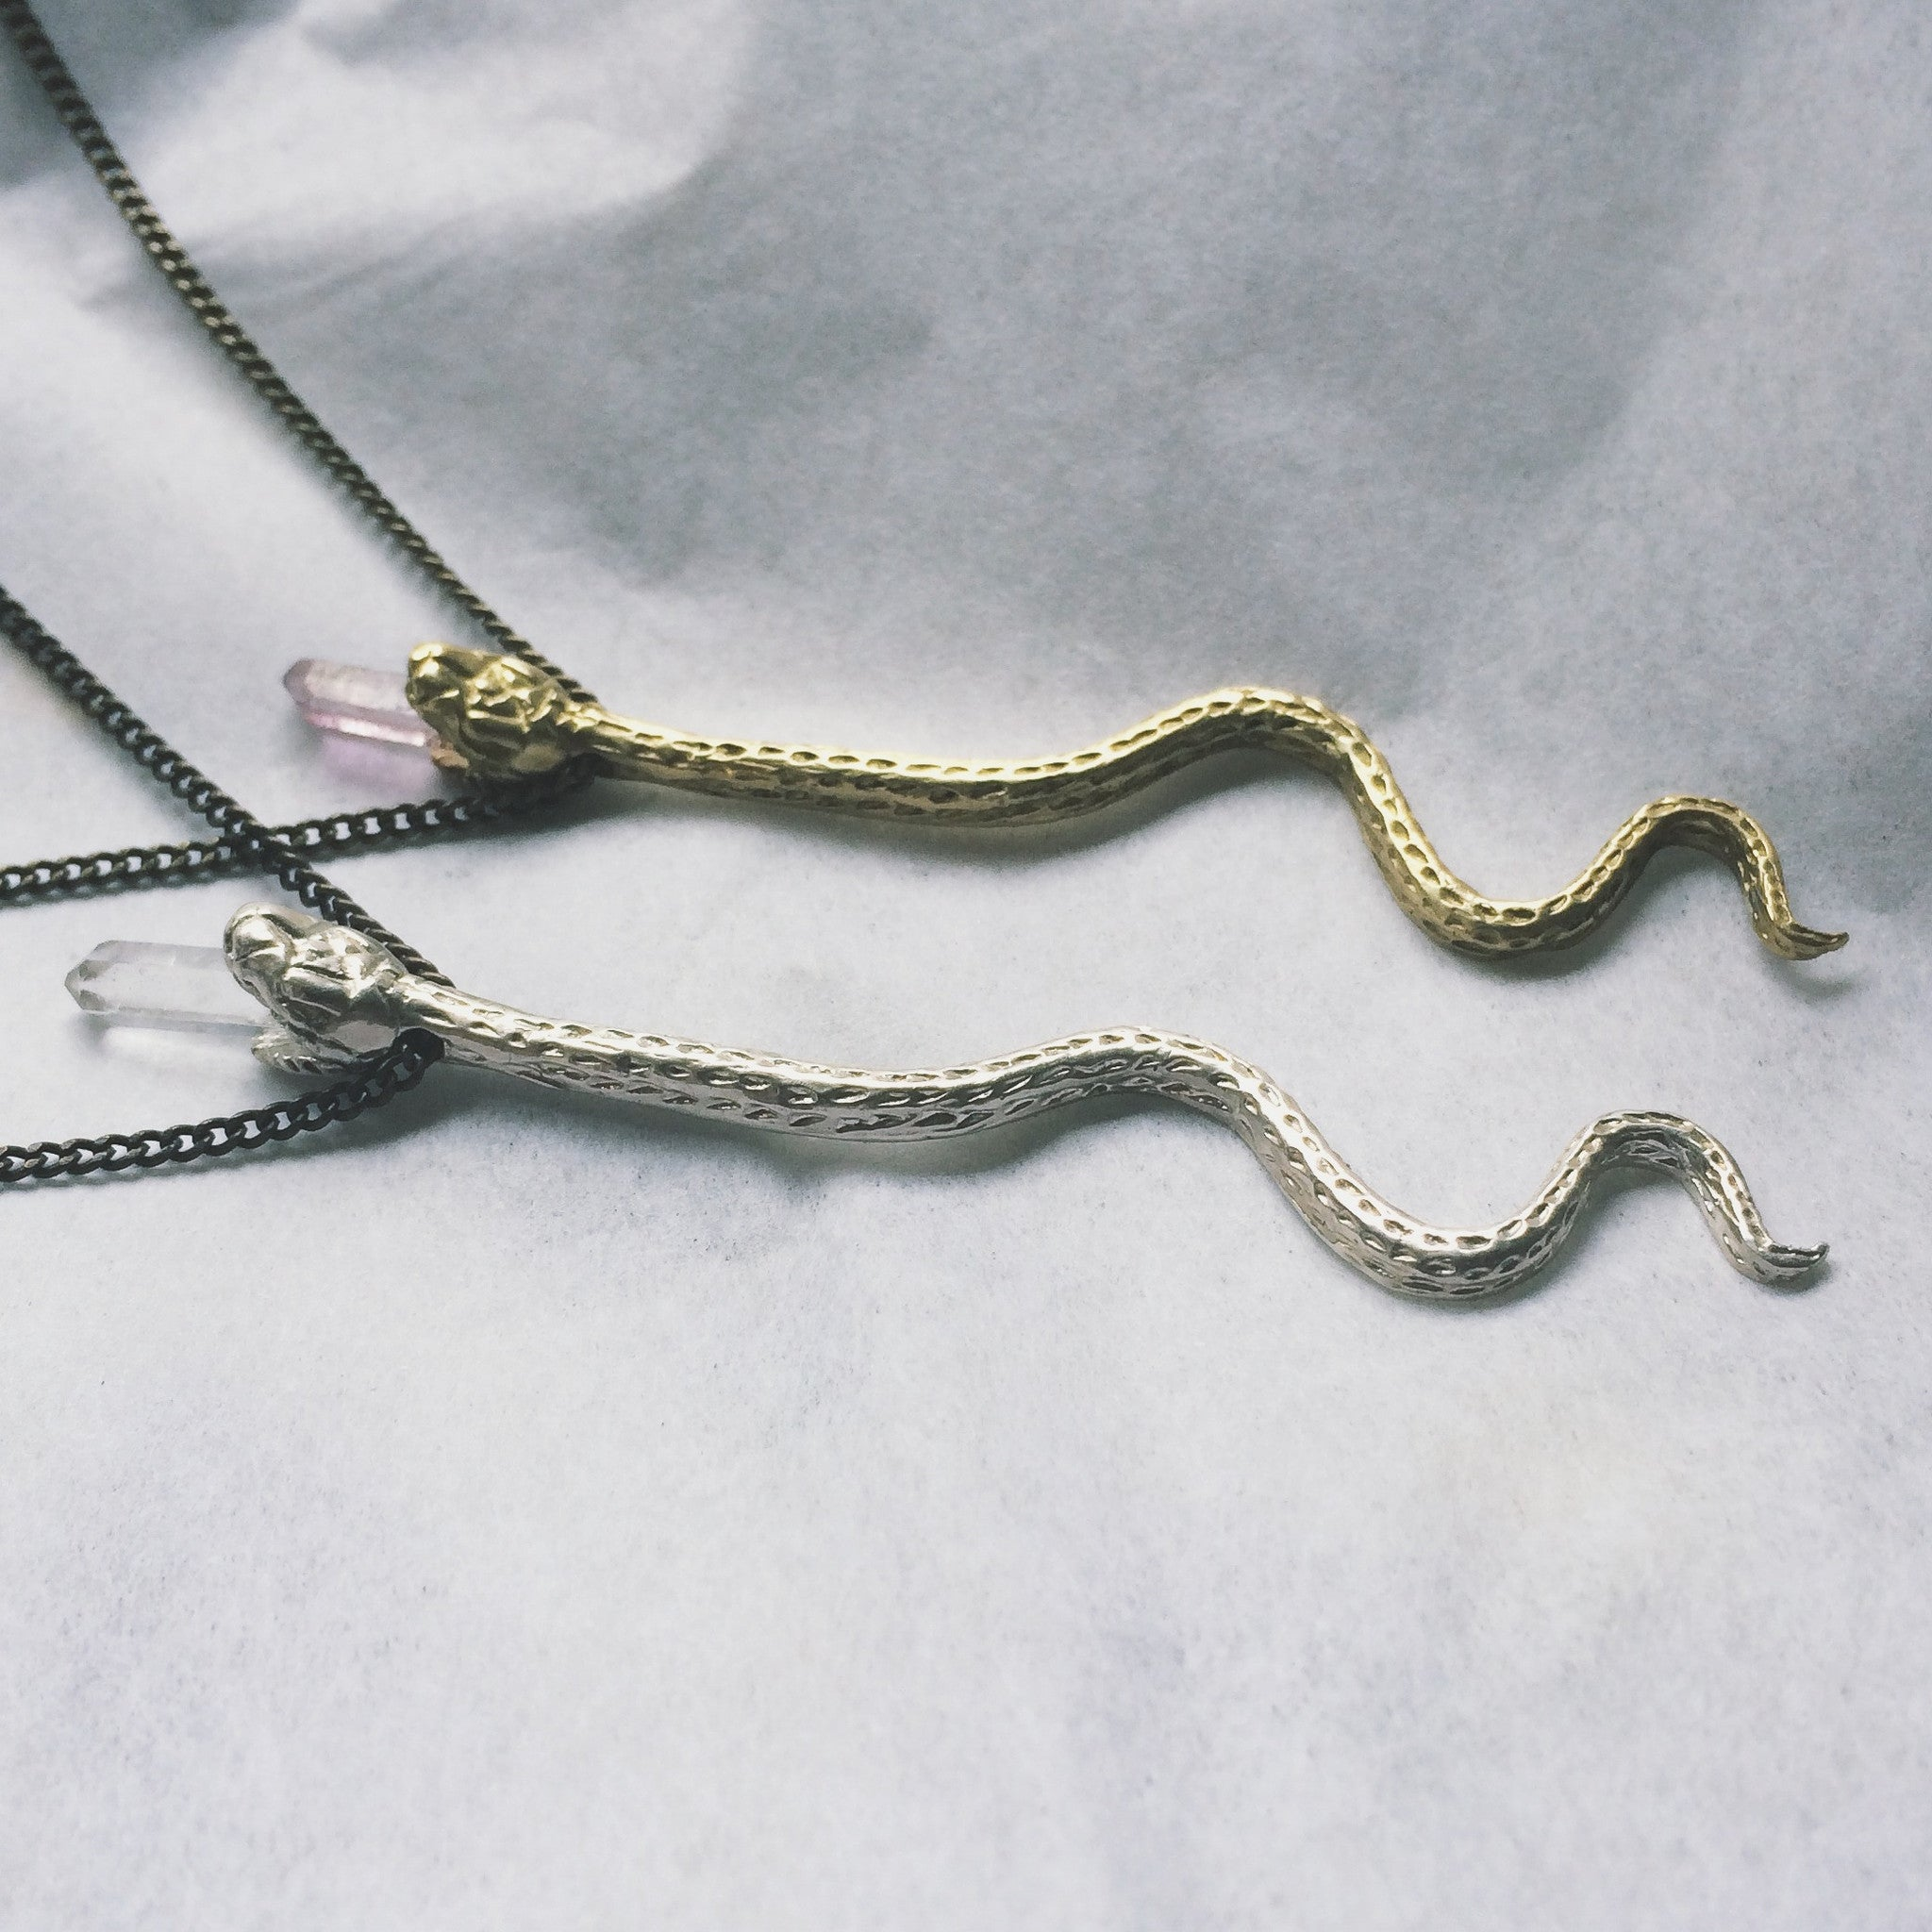 Swimming Serpent Necklace